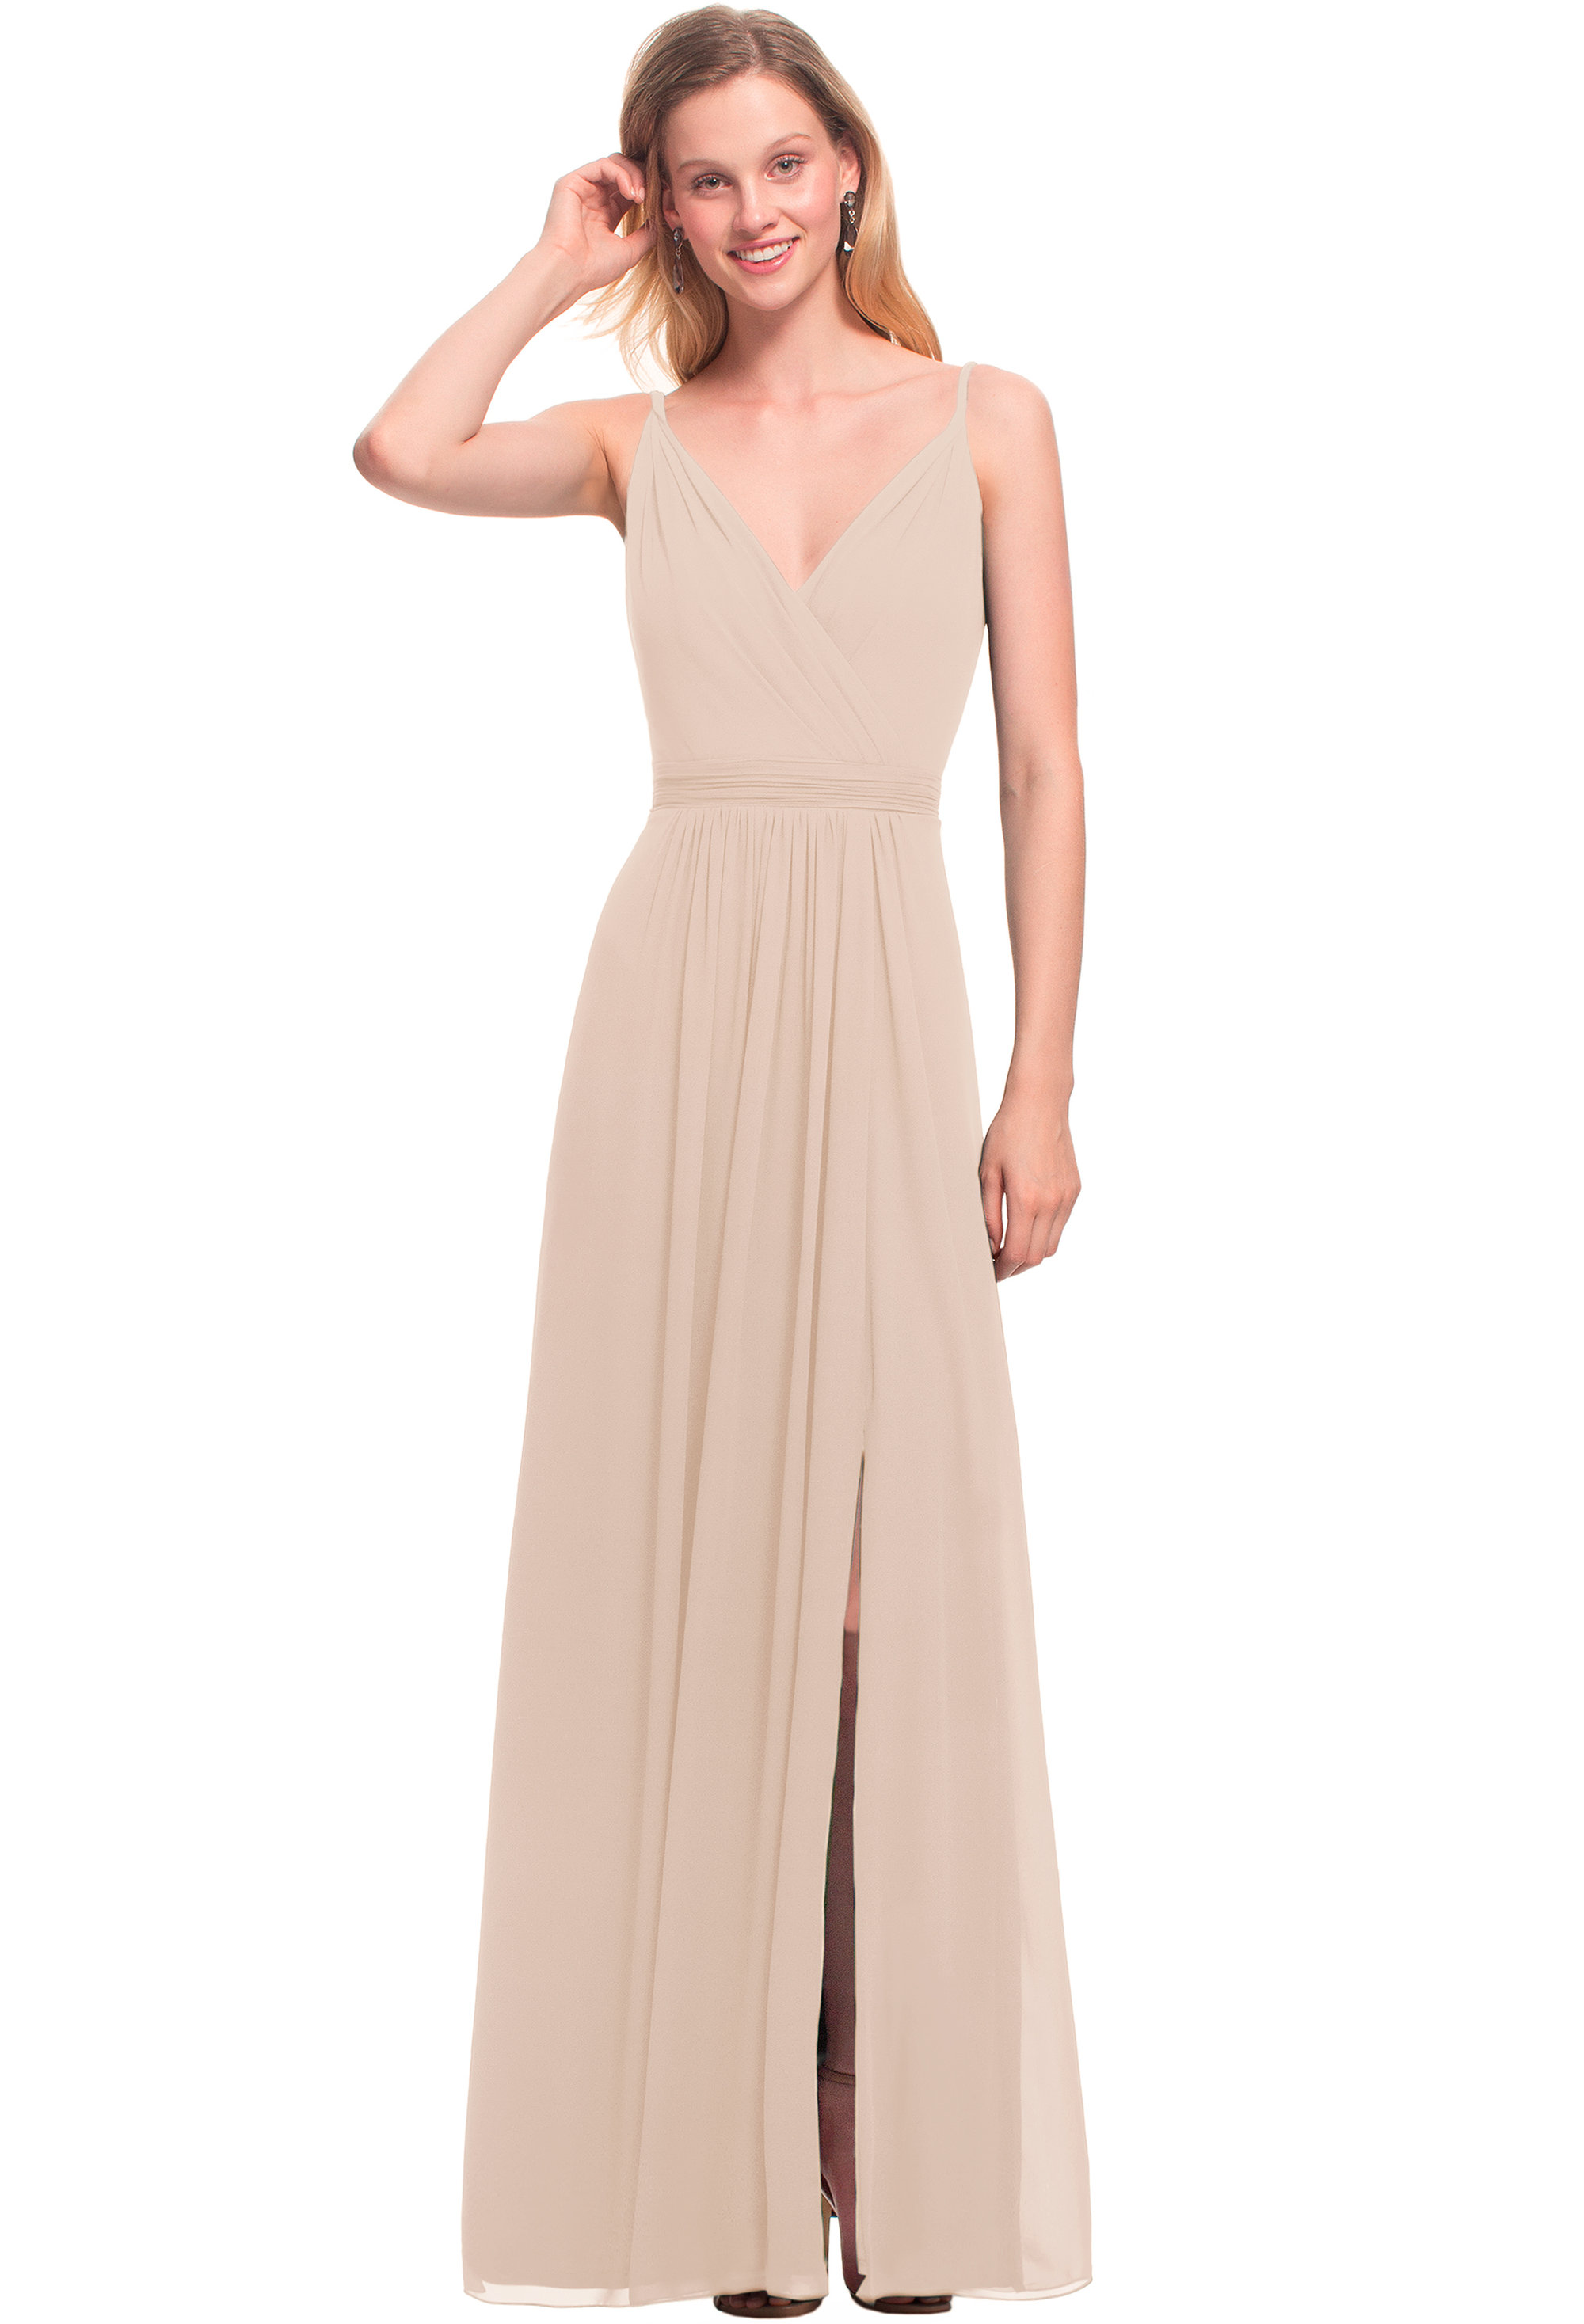 Bill Levkoff CASHMERE Chiffon V-neck A-line gown, $164.00 Front